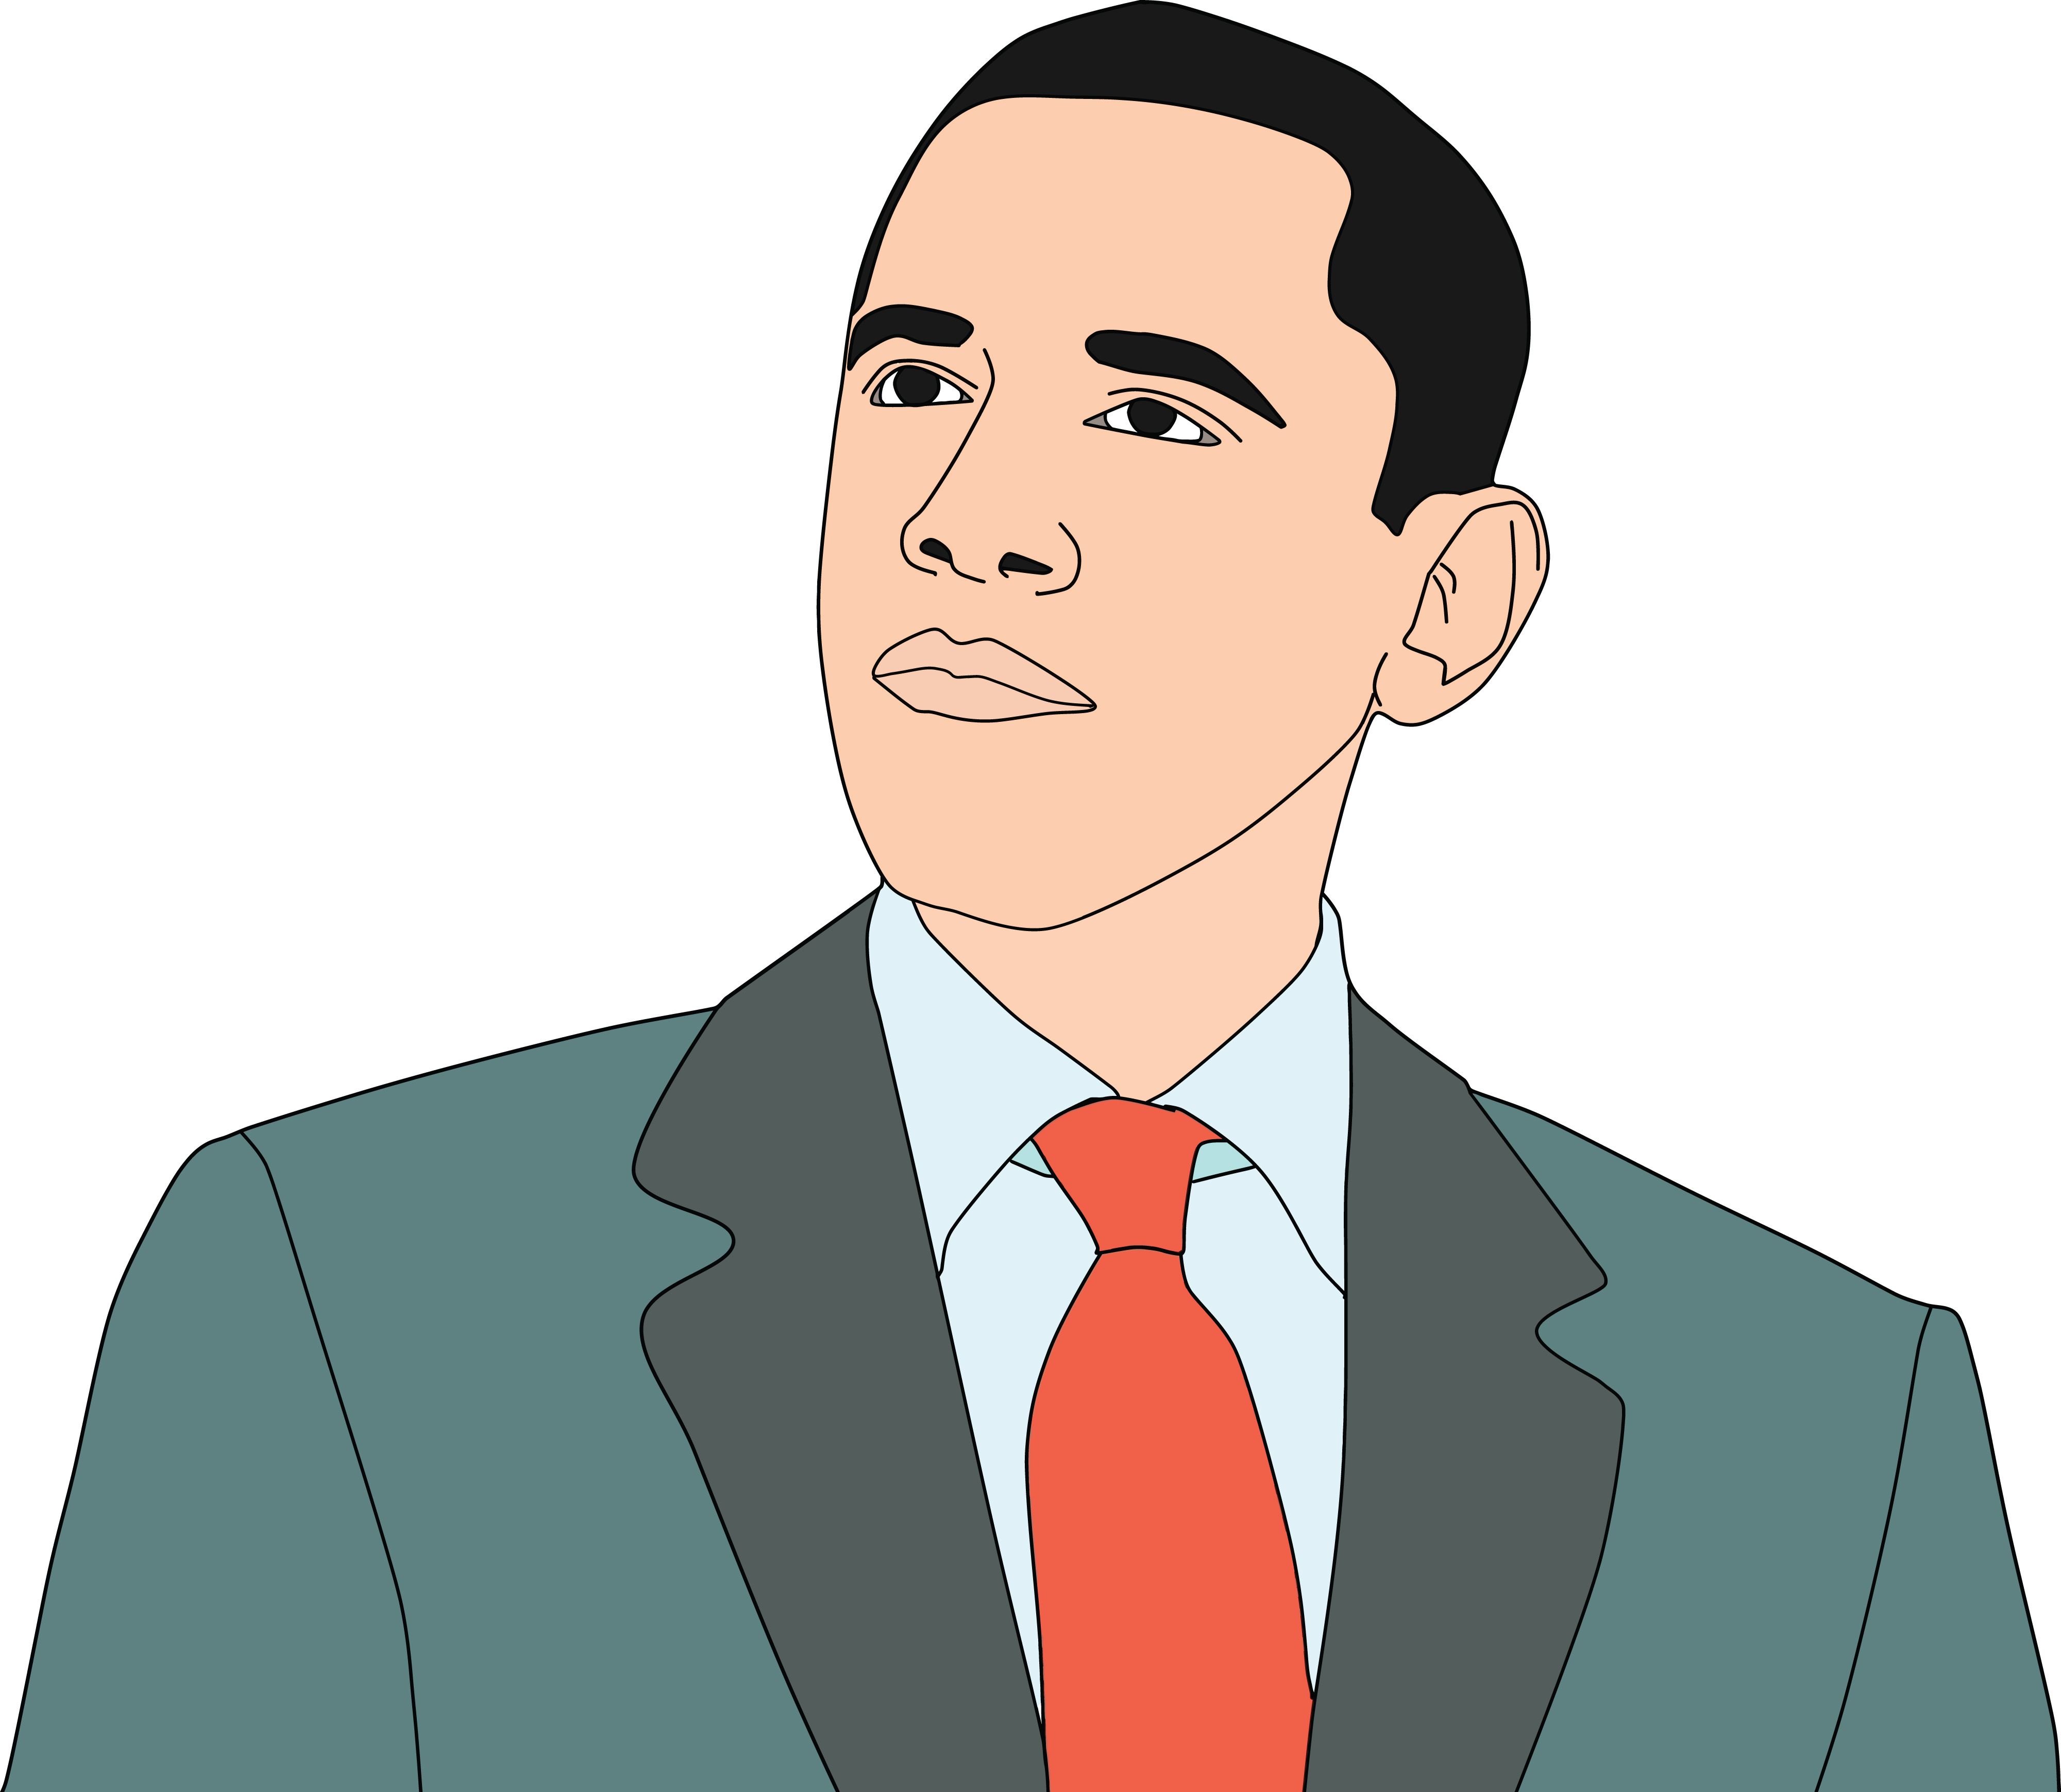 Free Clipart Of obama.